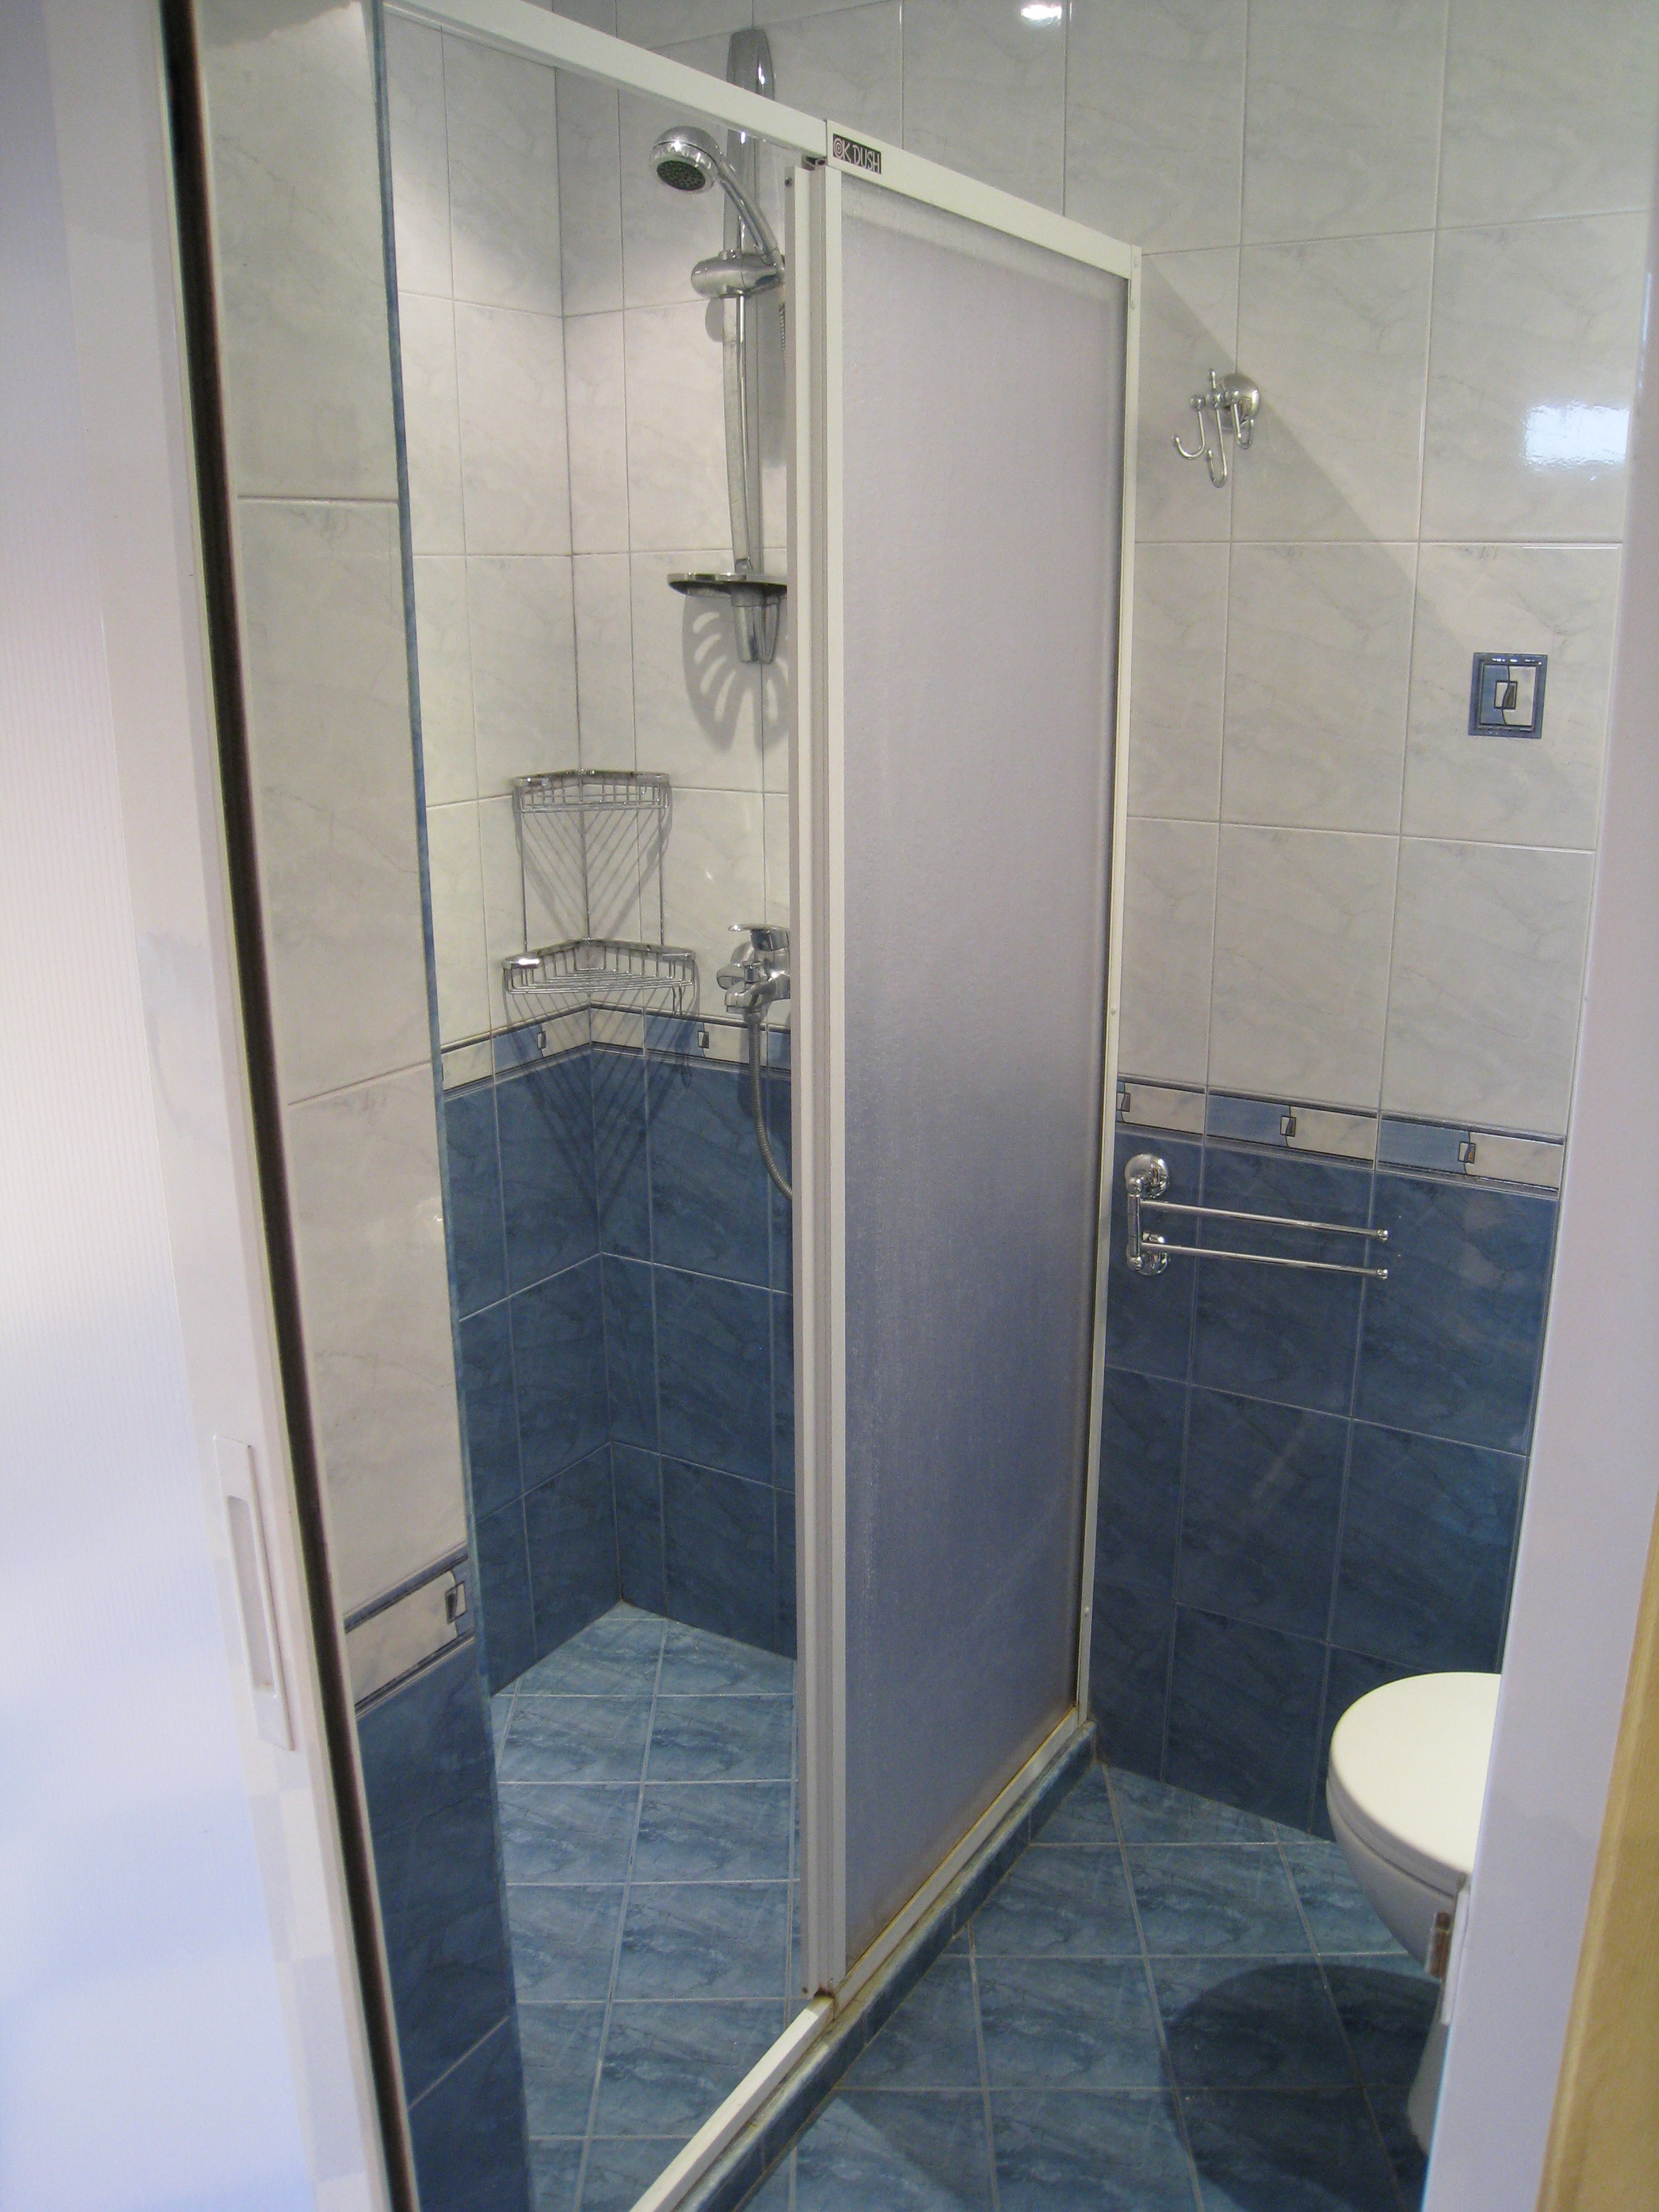 11.romm12 bathroom